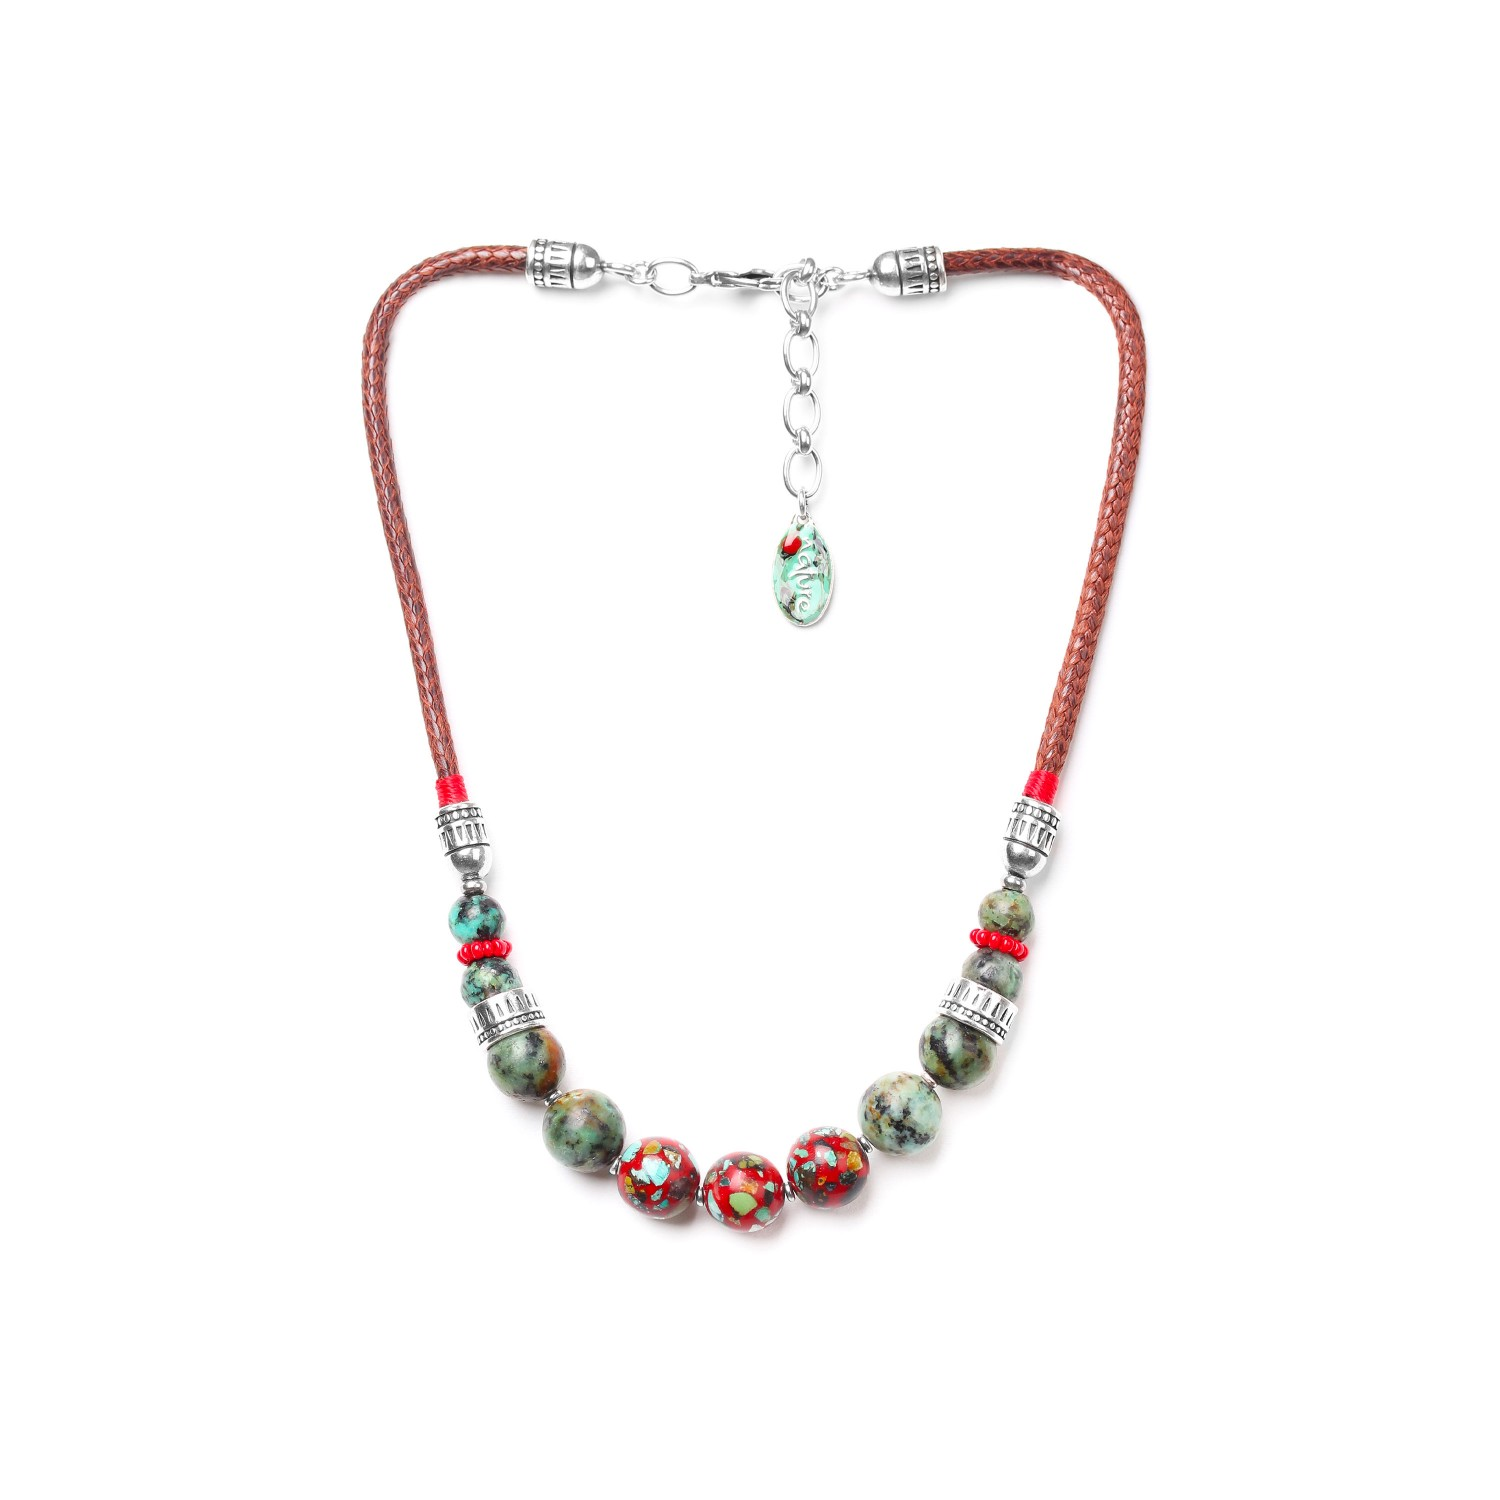 KATMANDOU 3 red beads necklace